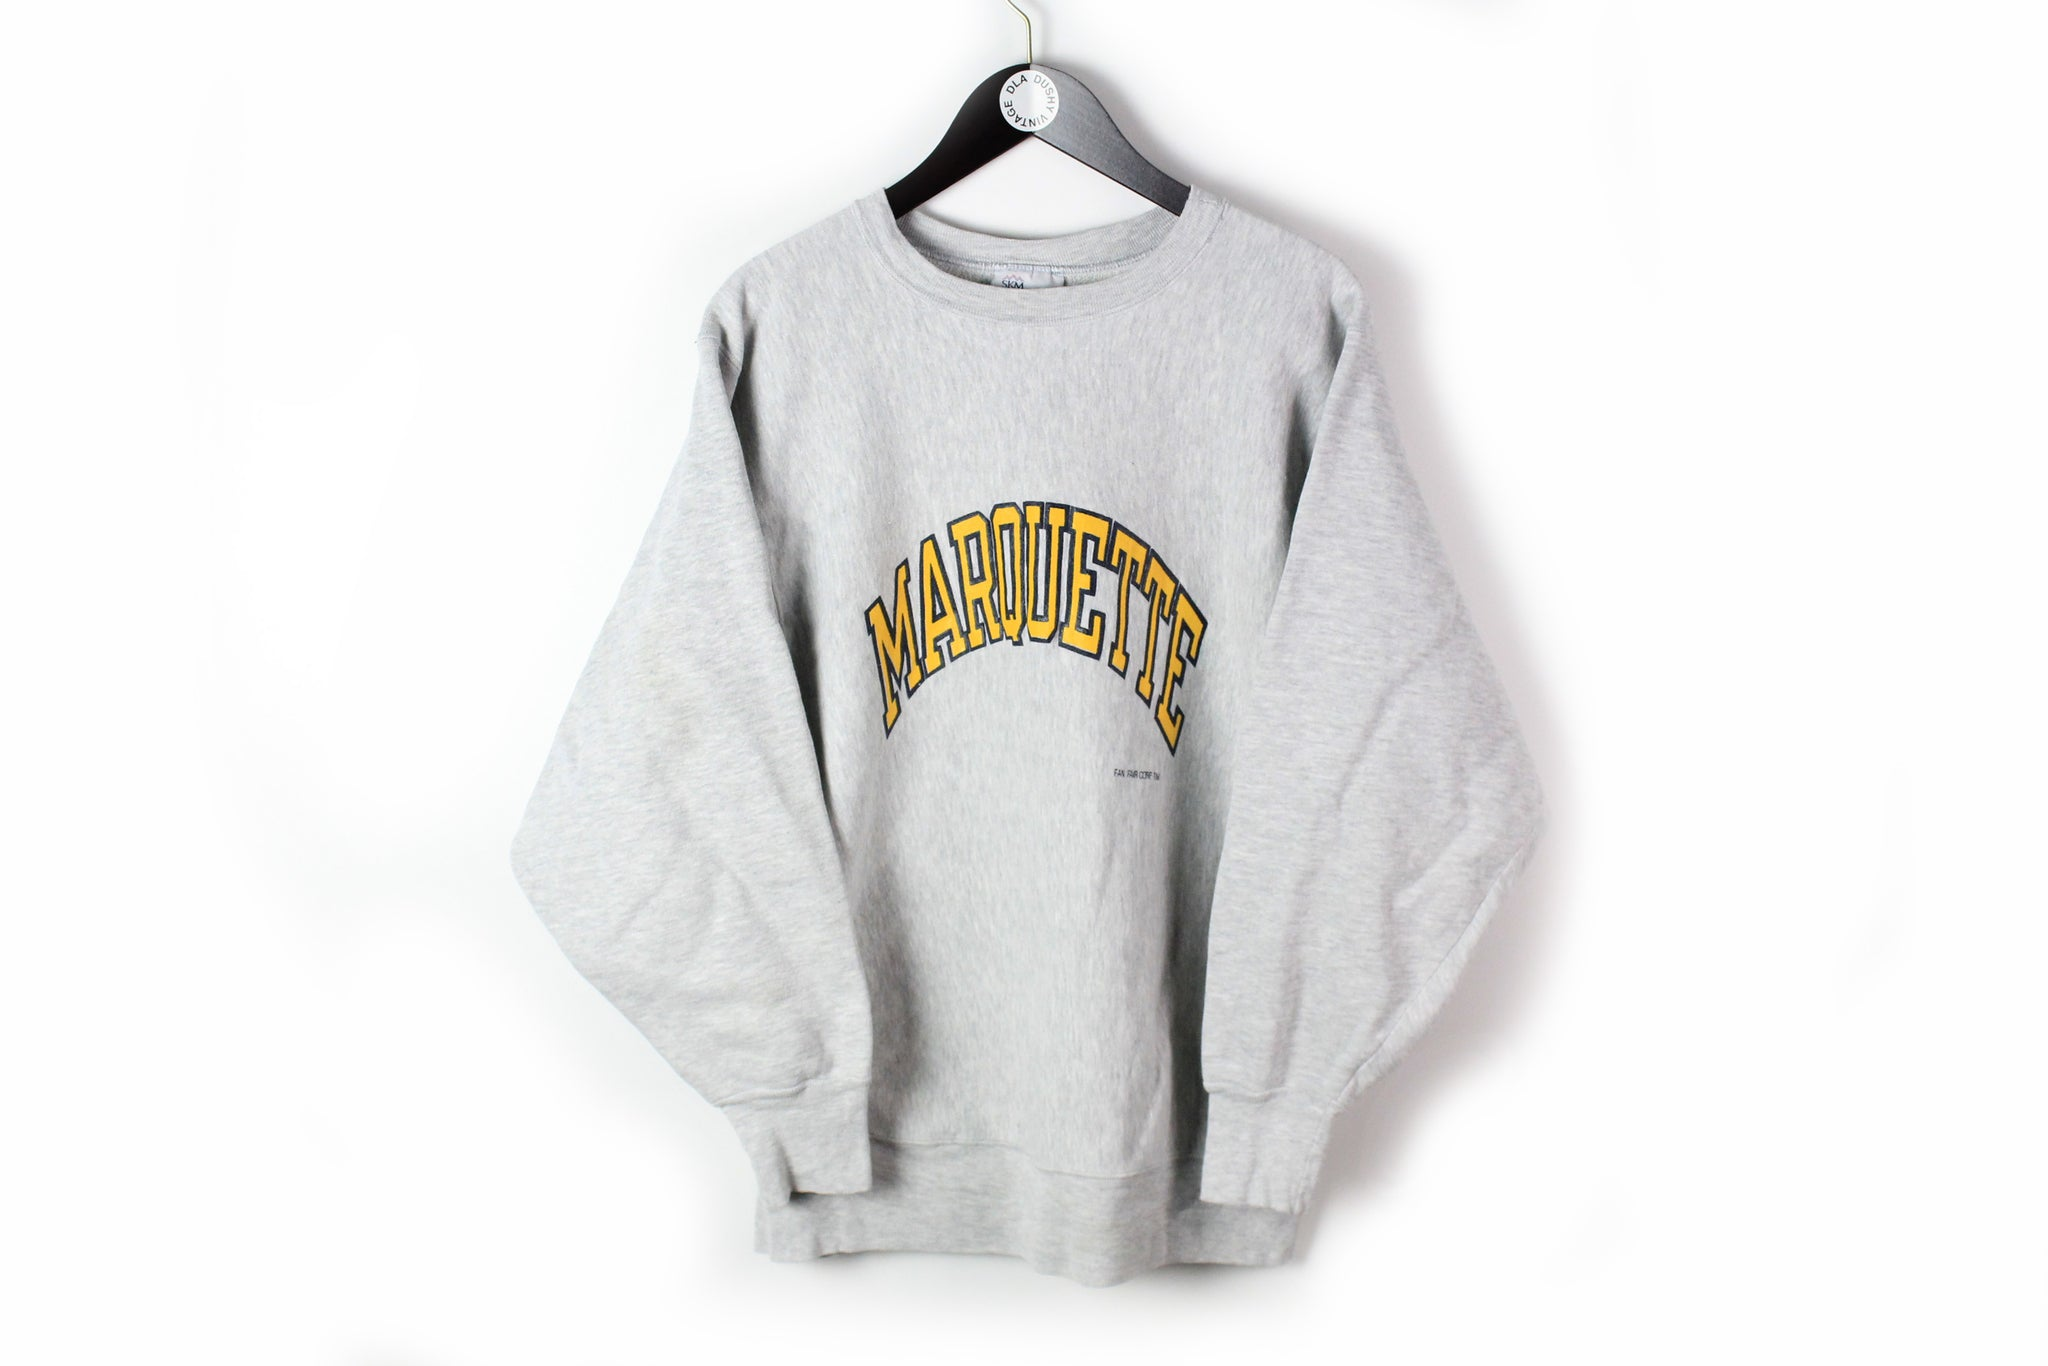 Vintage Marquette Sweatshirt Medium University jumper gray big logo made in USA